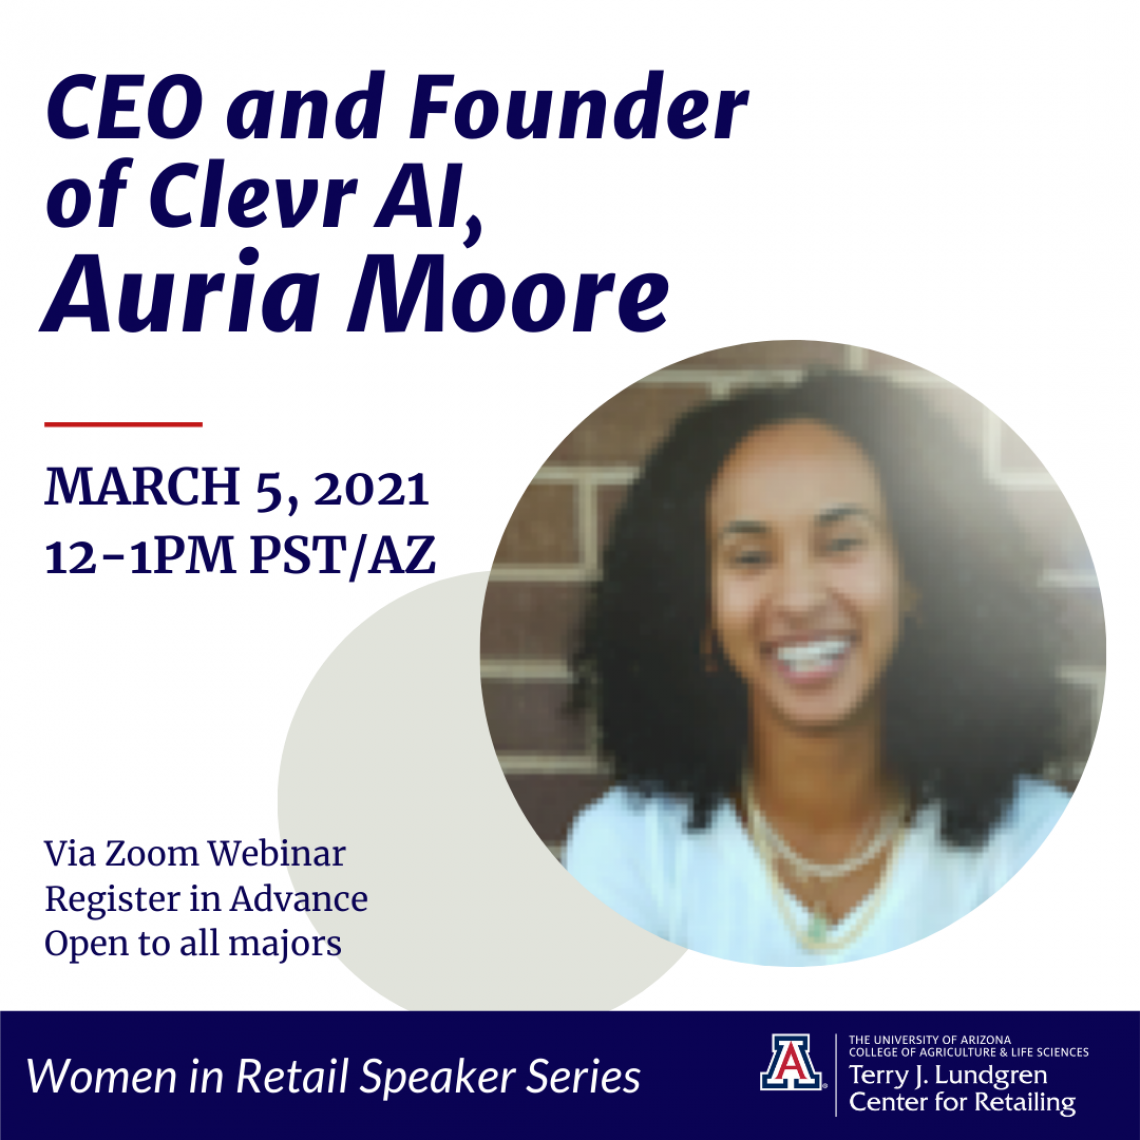 Flyer for Auria Moore, Founder & CEO Clevr AI